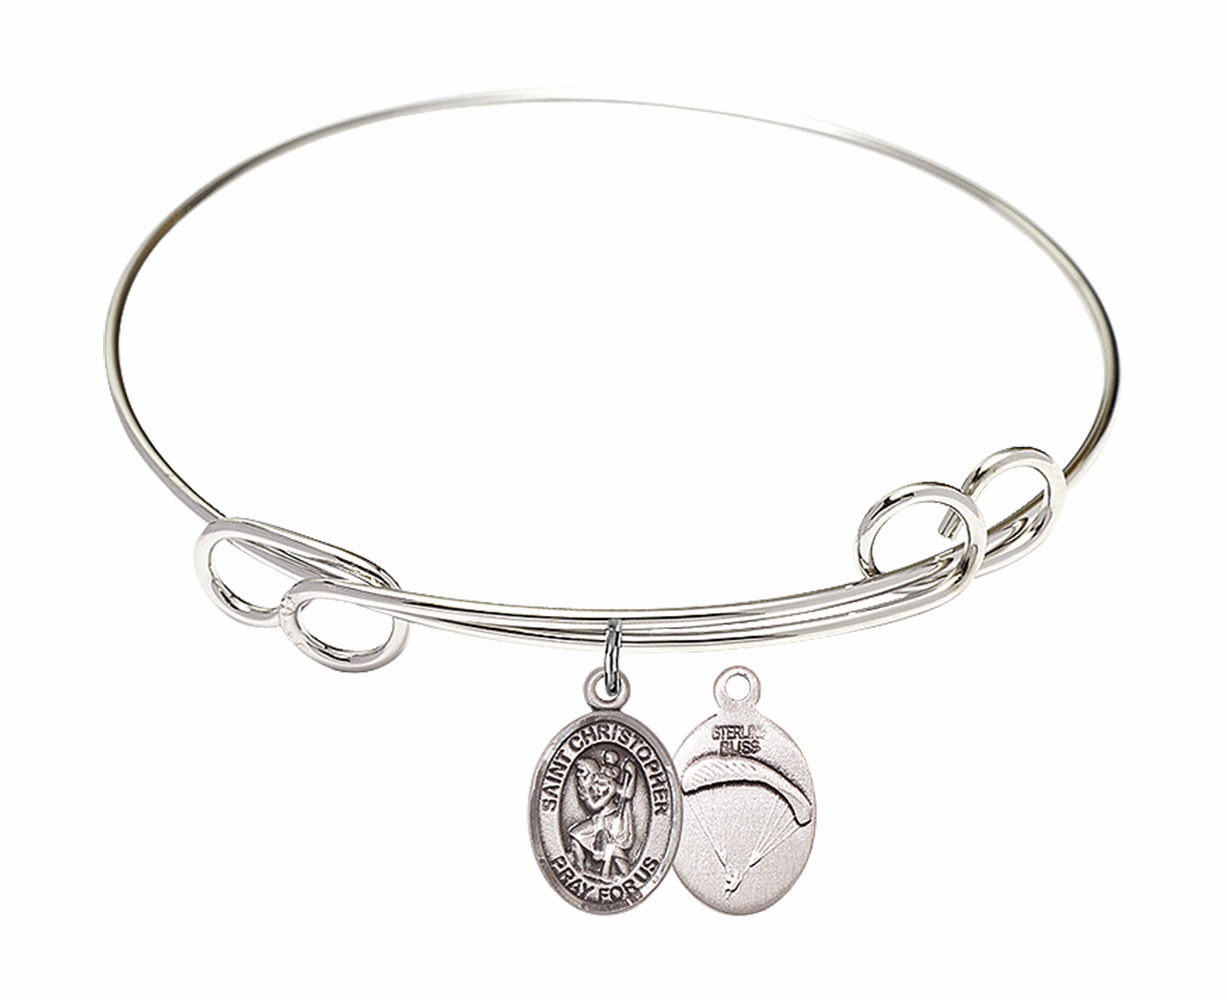 Round Loop St Christopher Paratrooper Bangle Charm Bracelet by Bliss